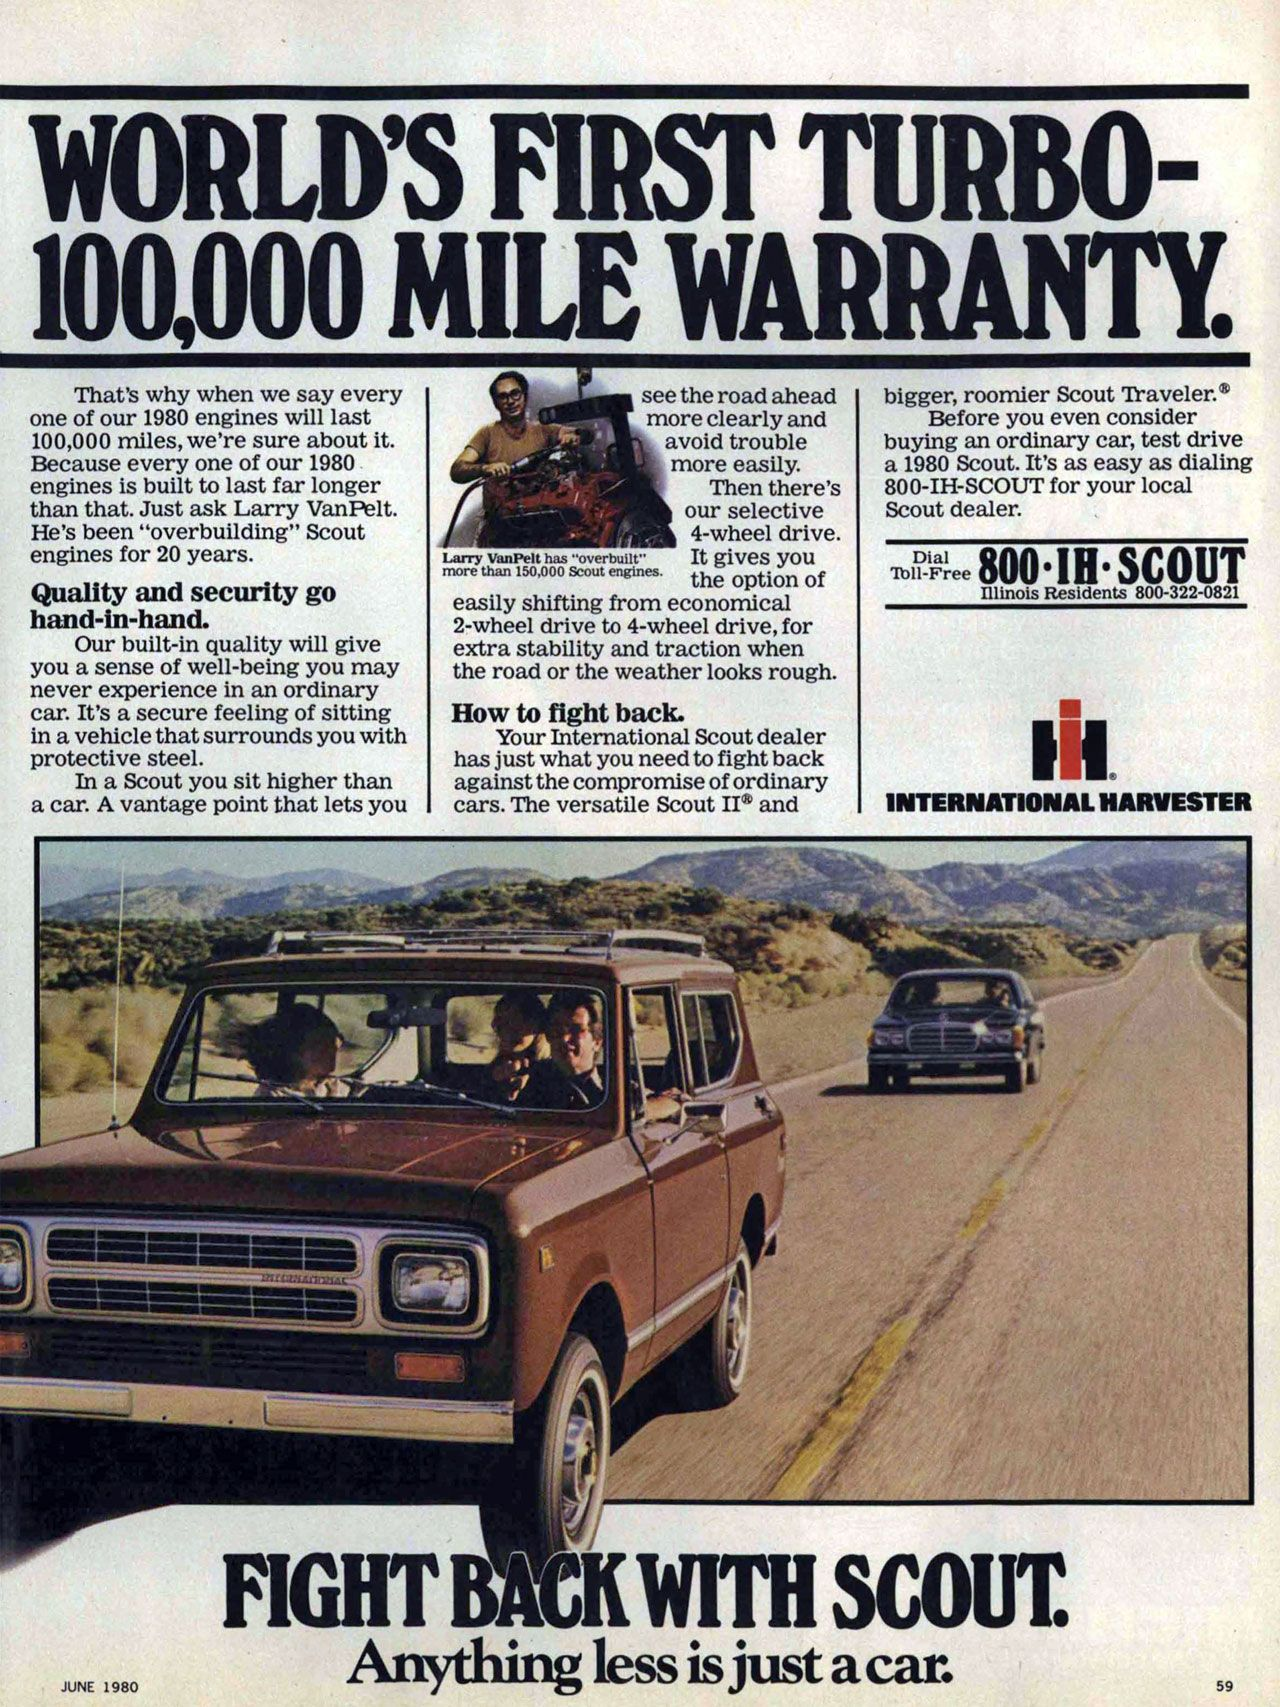 International Harvester. World's first turbo-100,000 mile warranty. Fight back with scout. Anything less is just a car. That's why when we say every one of our 1980 engines will last 100,000 miles, we're sure about it. Because every one of our 1980 engines is built to last far longer than that. Just ask Larry VanPelt. He's been 'overbuilding' Scout engines for 20 years. Quality and security go hand-in-hand. Our built-in quality will give you a sense of well-being you may never experience in an ordinary car. It's a secure feeling of sitting in a vehicle that surrounds you with protective steel. In a Scout you sit higher than a car. A vantage point that lets you see the road ahead more clearly and avoid trouble more easily. Then there's our selective • 4-wheel drive. Larry VanPelt has -overbuilt' It gives you more than 150,000 Scout engines the option of easily shifting from economical 2-wheel drive to 4-wheel drive, for extra stability and traction when the road or the weather looks rough. How to fight back. Your International Scout dealer has just what you need to fight back against the compromise of ordinary cars. The versatile Scout and bigger, roomier Scout rfraveler. Before you even consider buying an ordinary car, test drive a 1980 Scout. It's as easy as dialing 800-IH-SCOUT for your local Scout dealer. Illinois Residents 800-322-0821